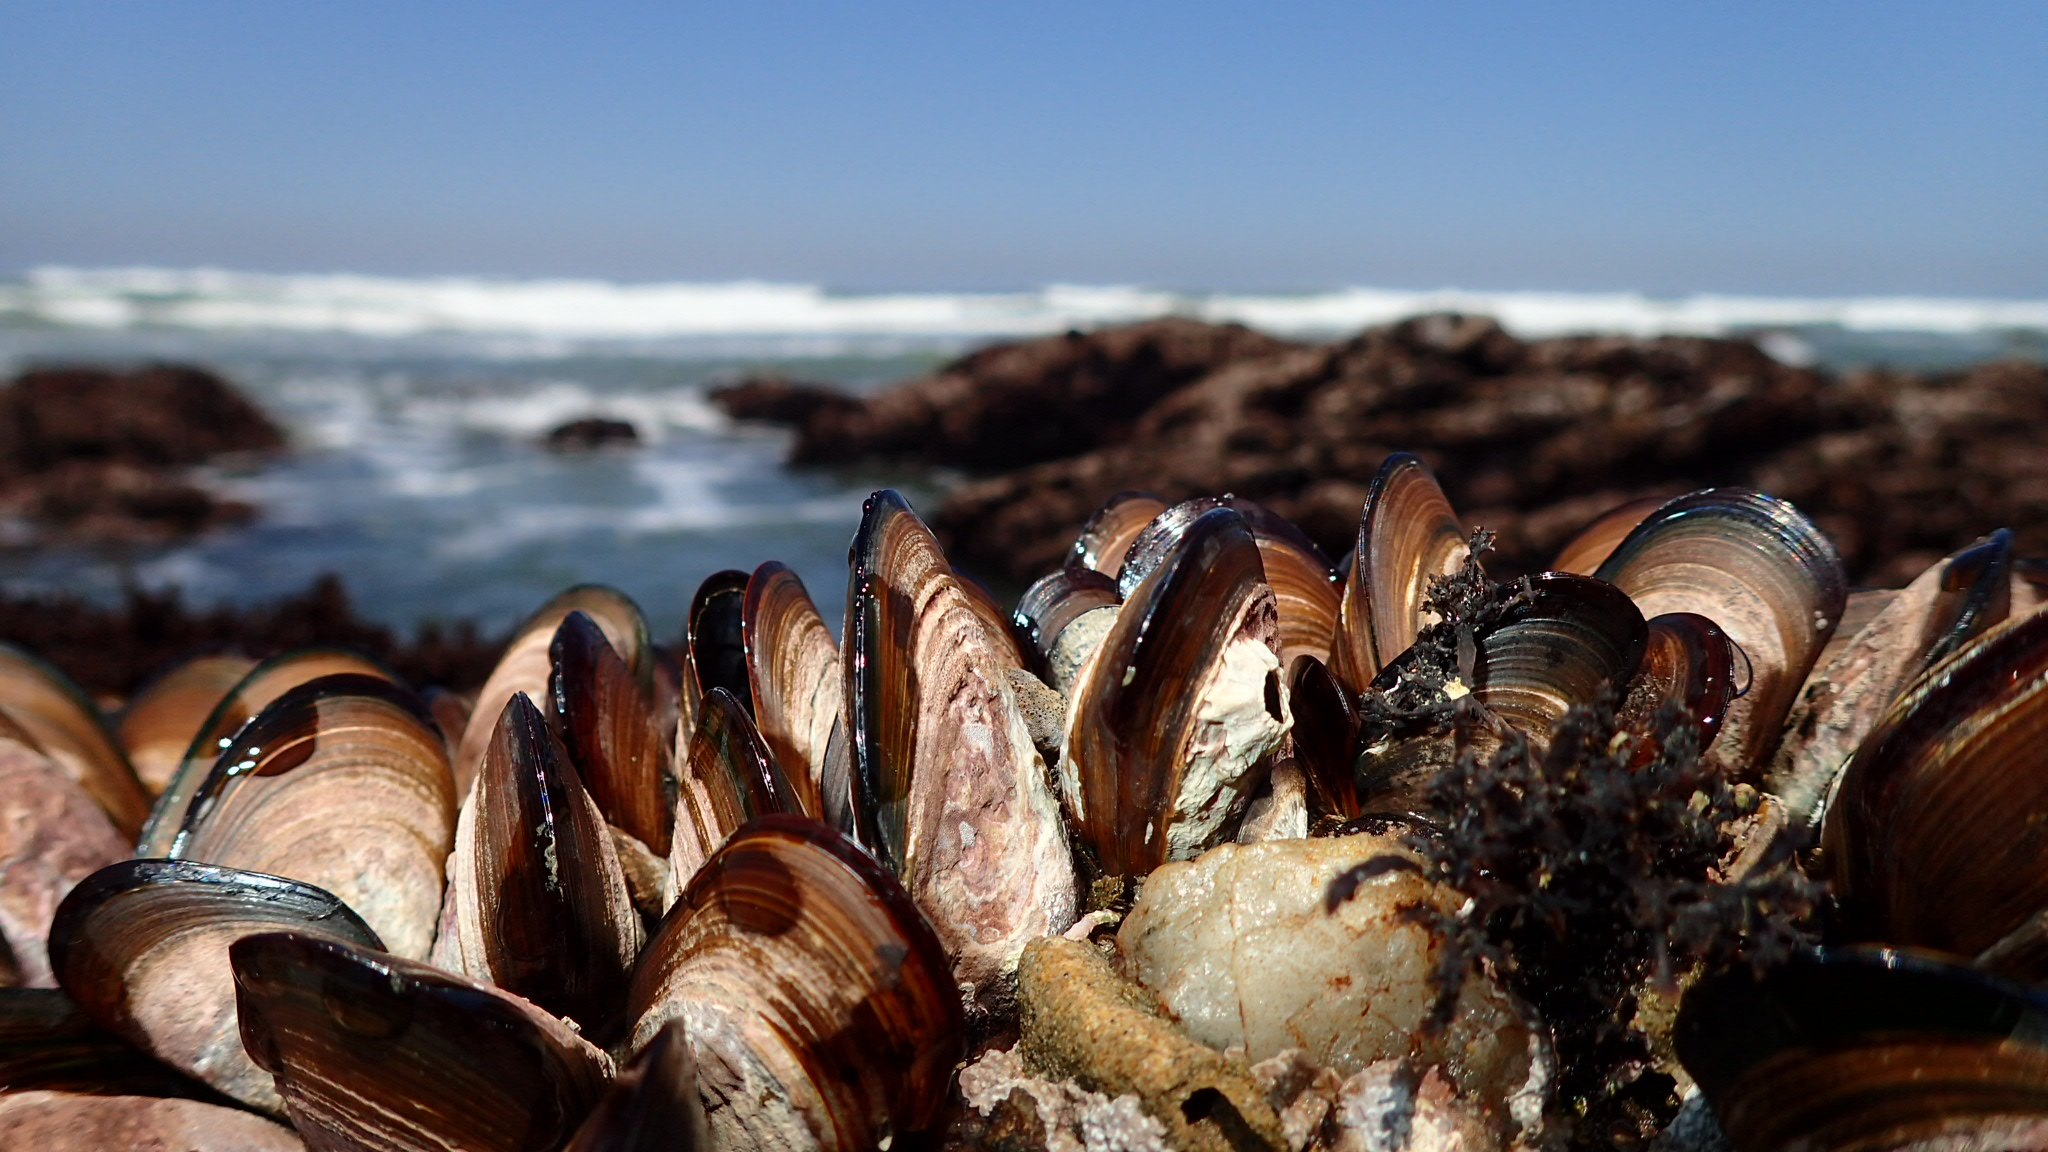 A typical temperate rocky shoreline scene. Lots of surf, lots of creatures - and in this case - lots of mussels. Photo: Rita Steyn @ritasteyn